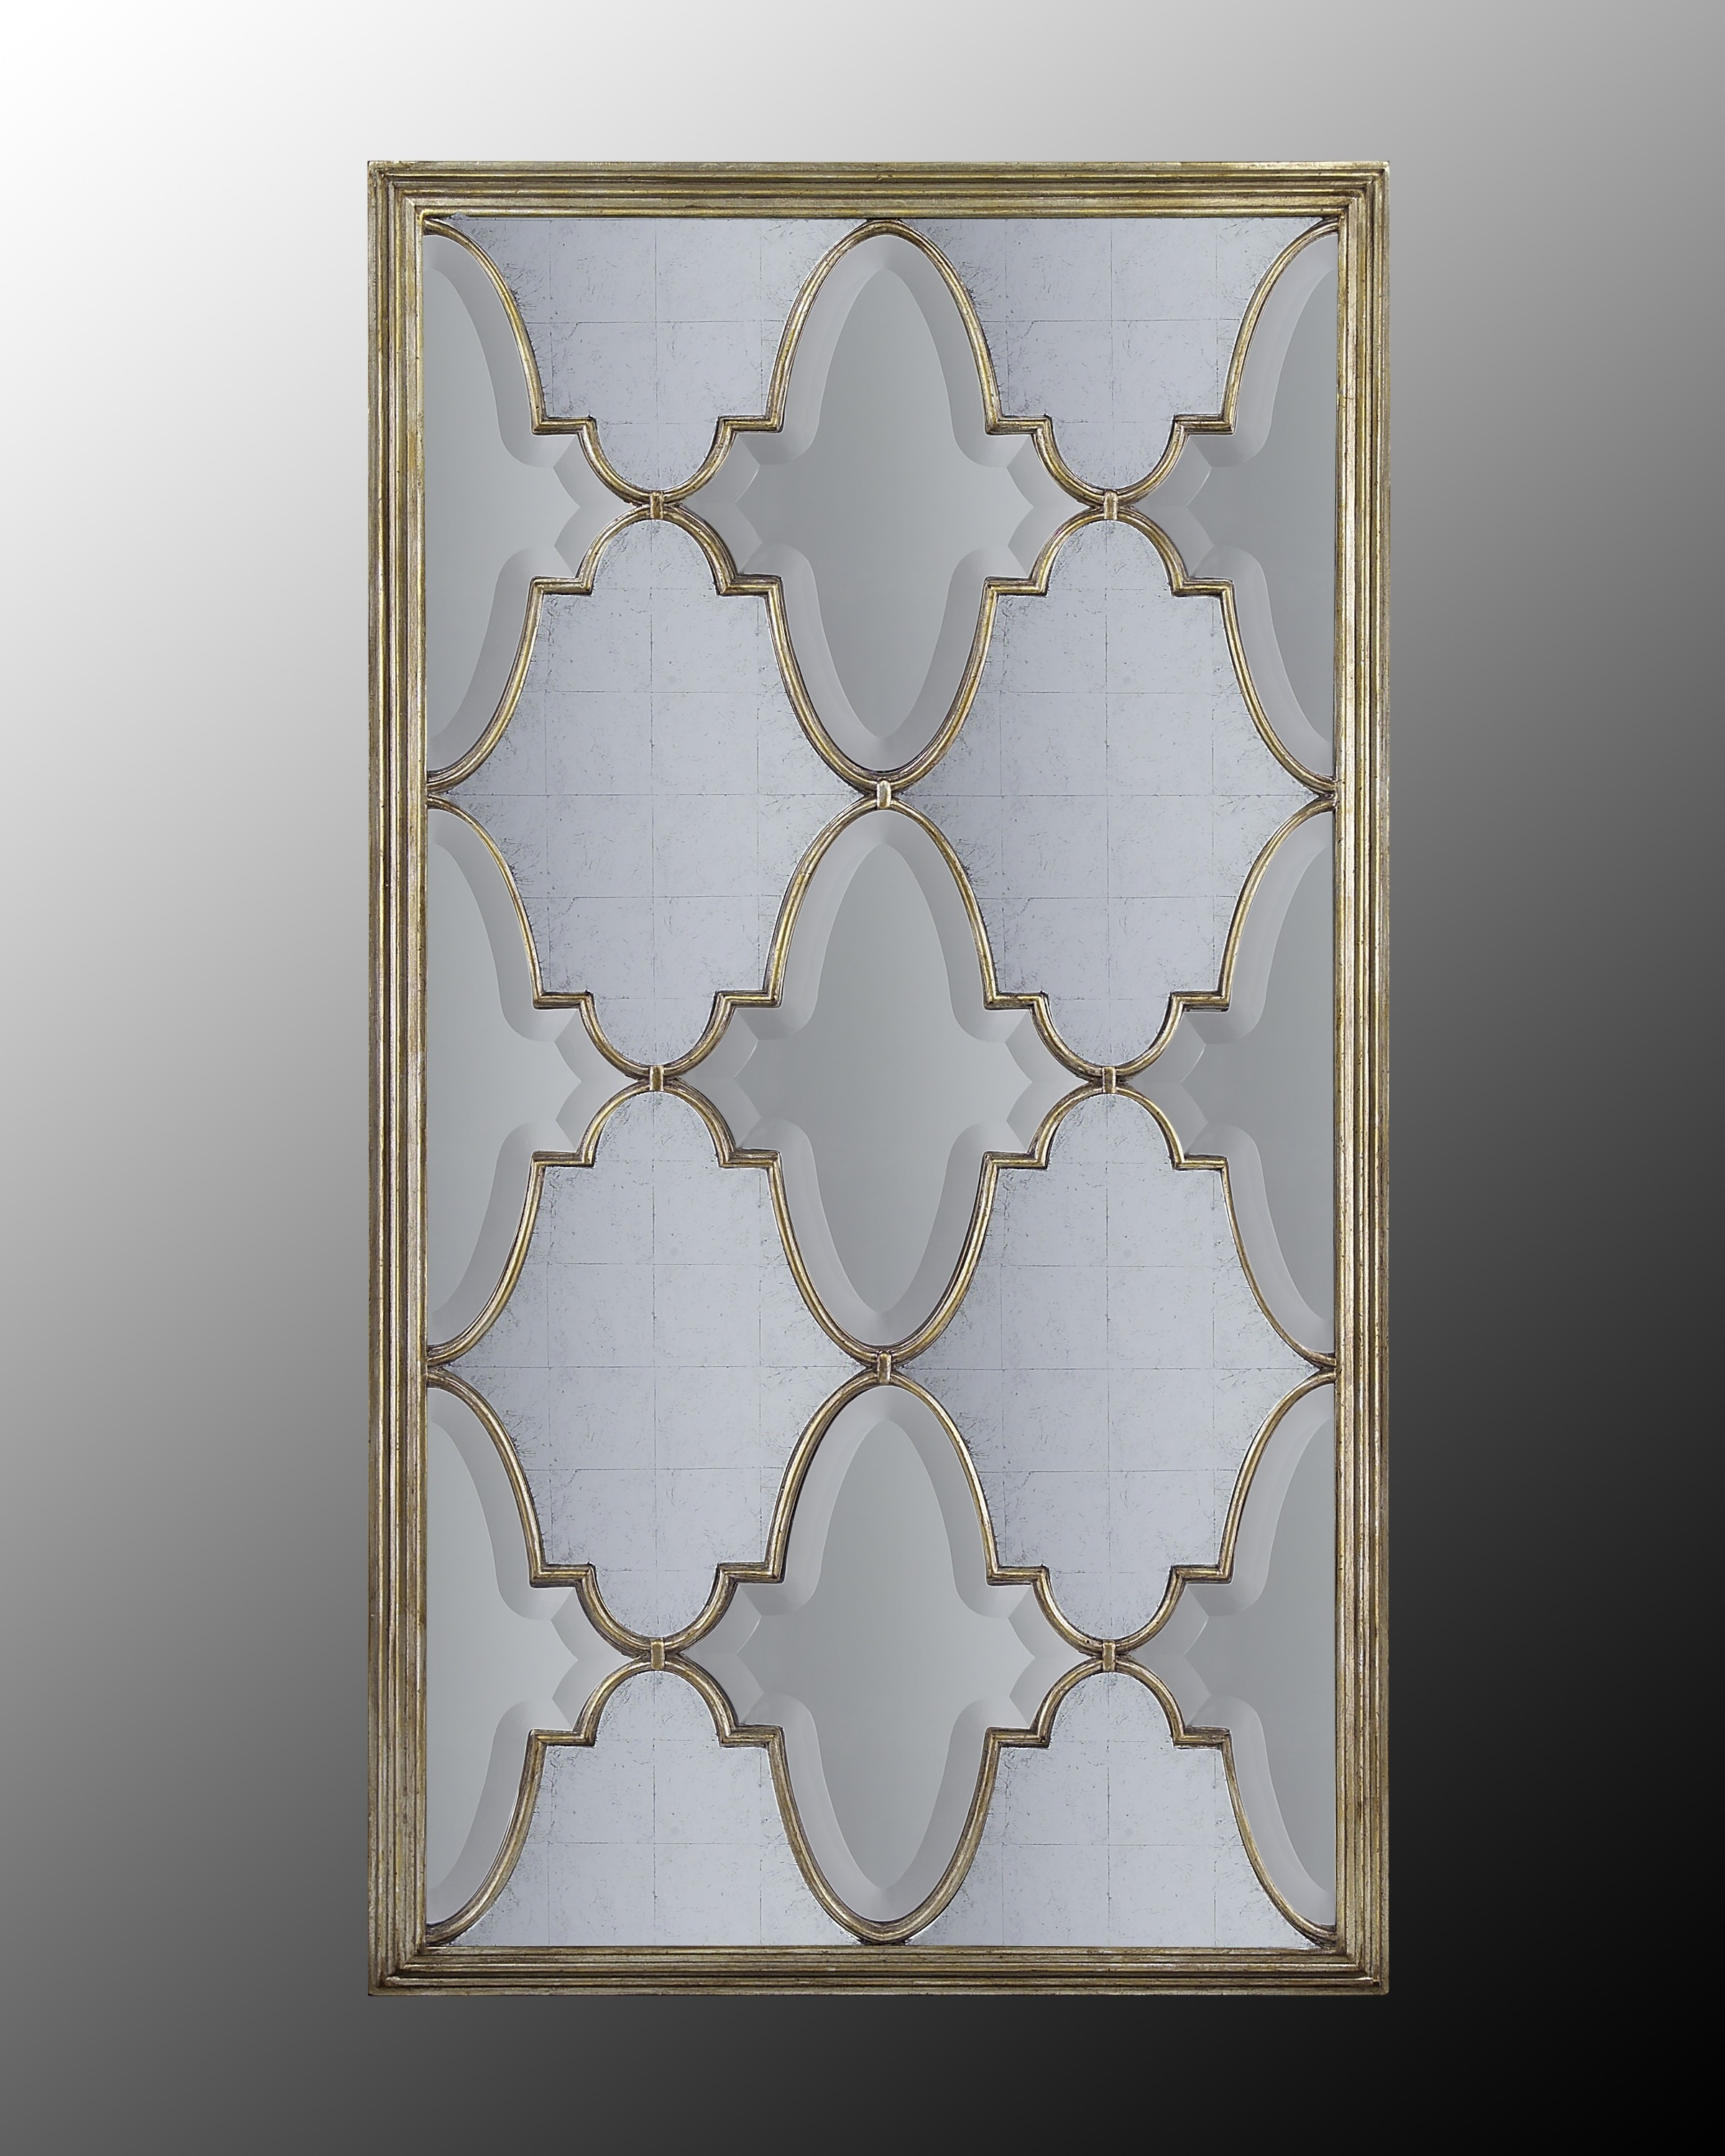 Michelle Venetian-Silver Mirror w/Eglomise & Beveled Panes